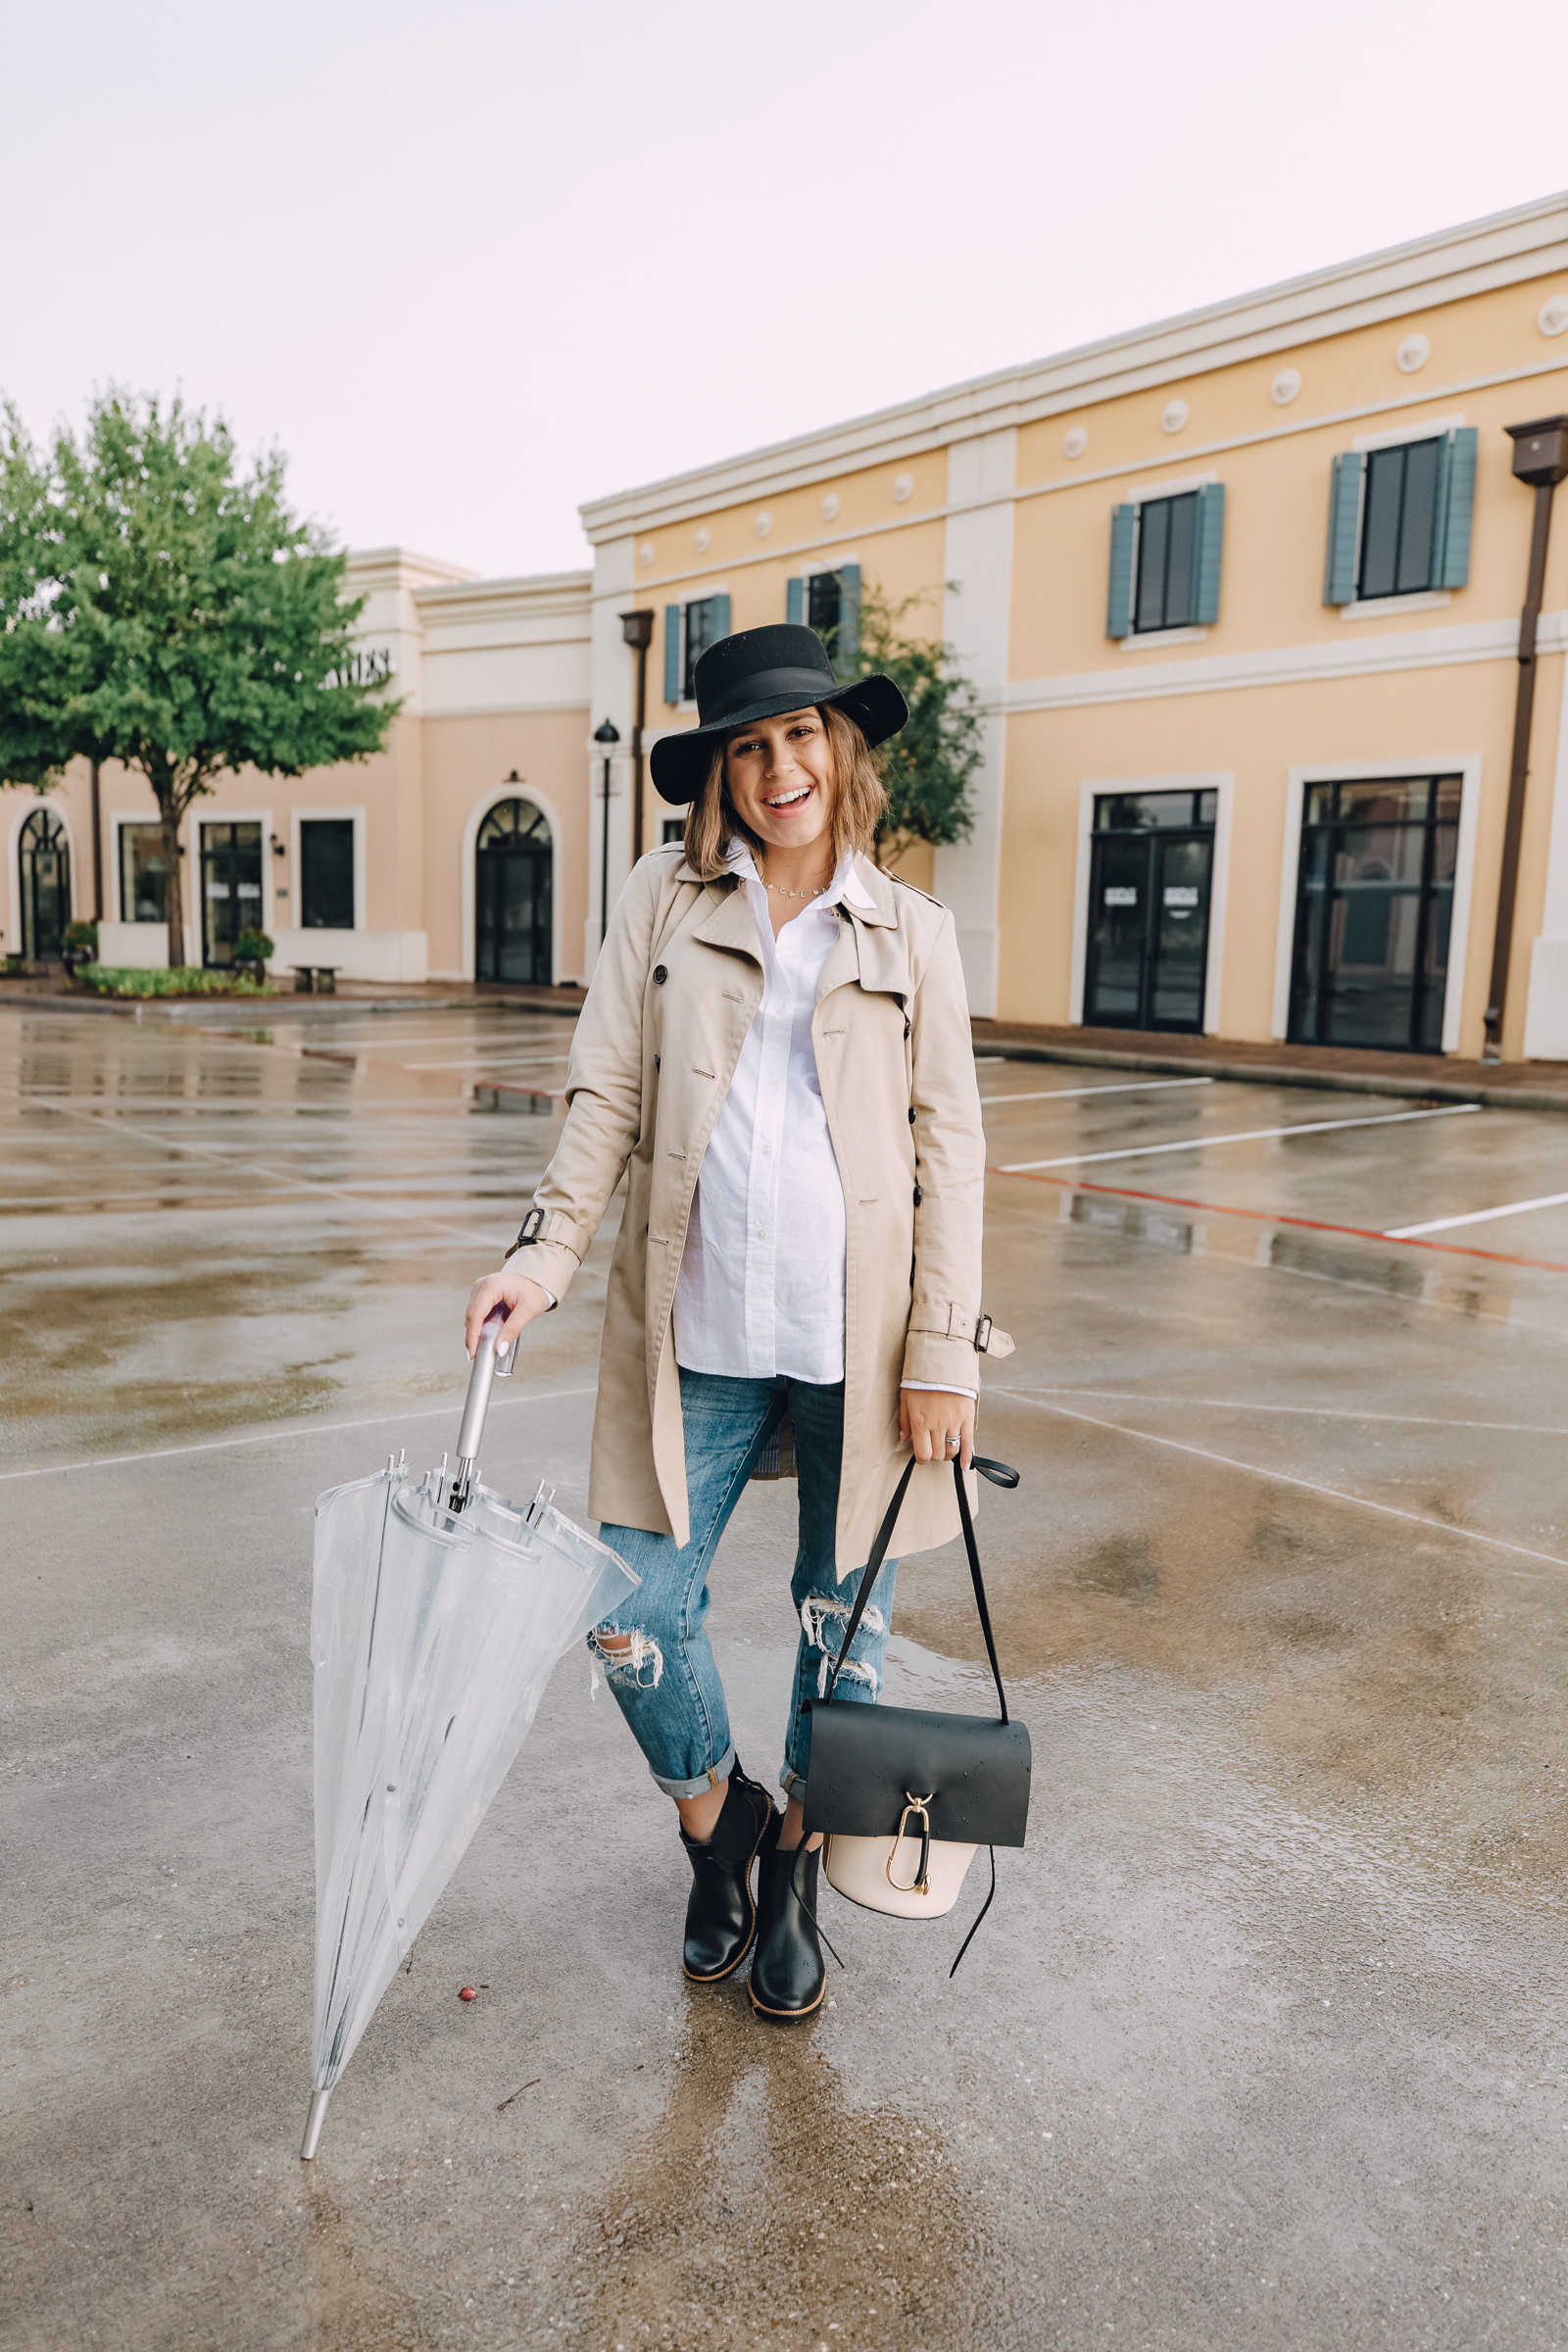 Stuck on what to wear on a rainy day? fashion blogger Elly Brown shares an easy and chic rainy day outfit!